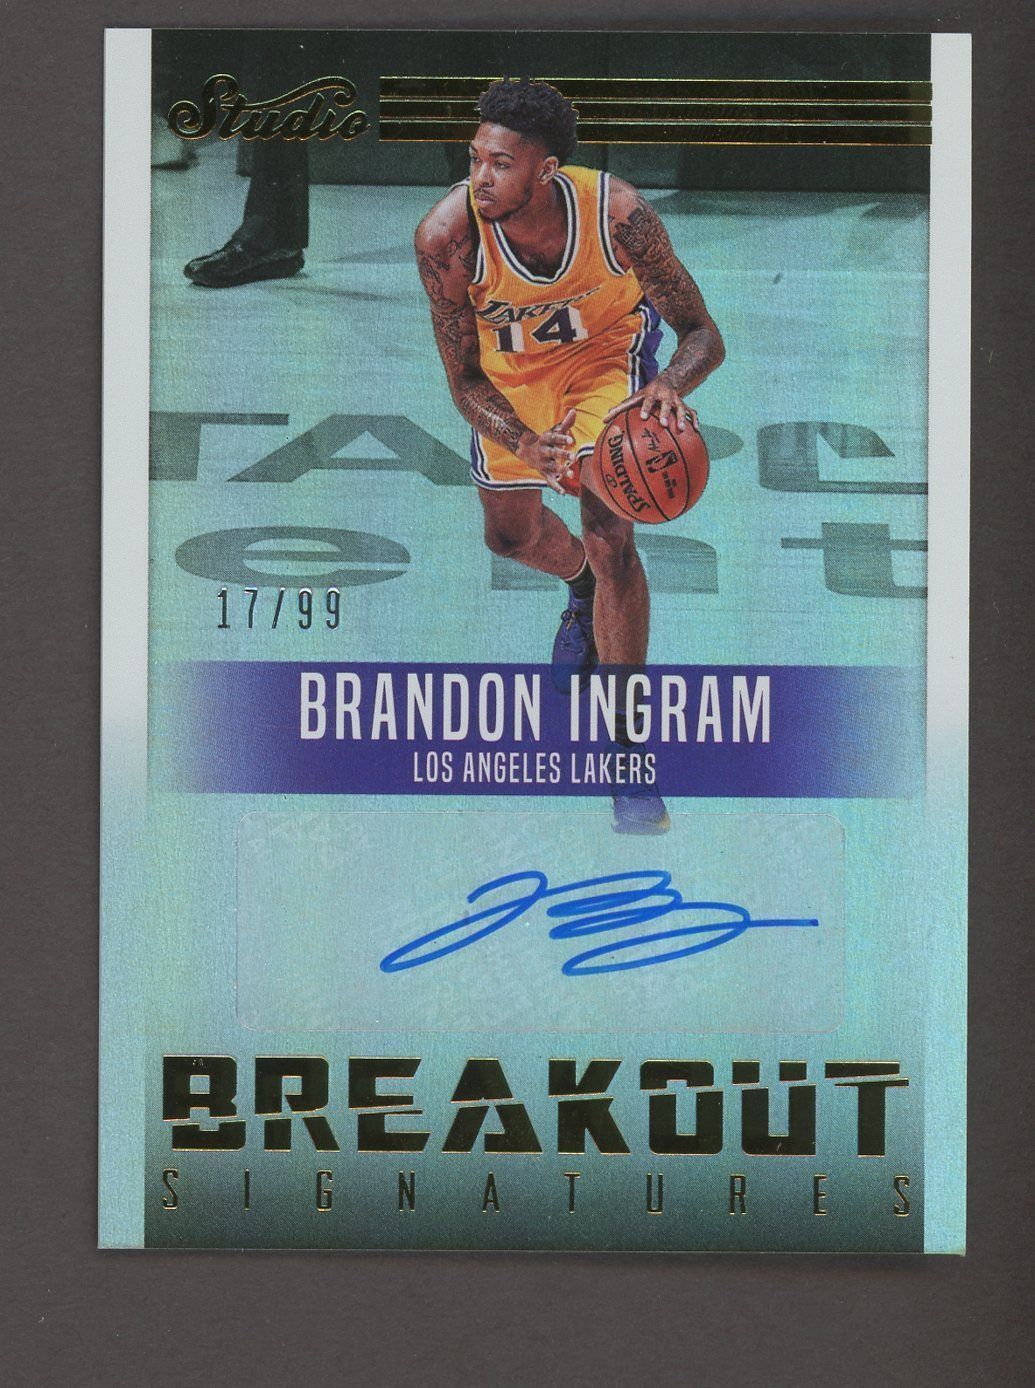 ccffc258b5b 2016-17 Panini Studio Breakout Signatures Brandon Ingram Lakers RC AUTO 17 99   BasketballCards